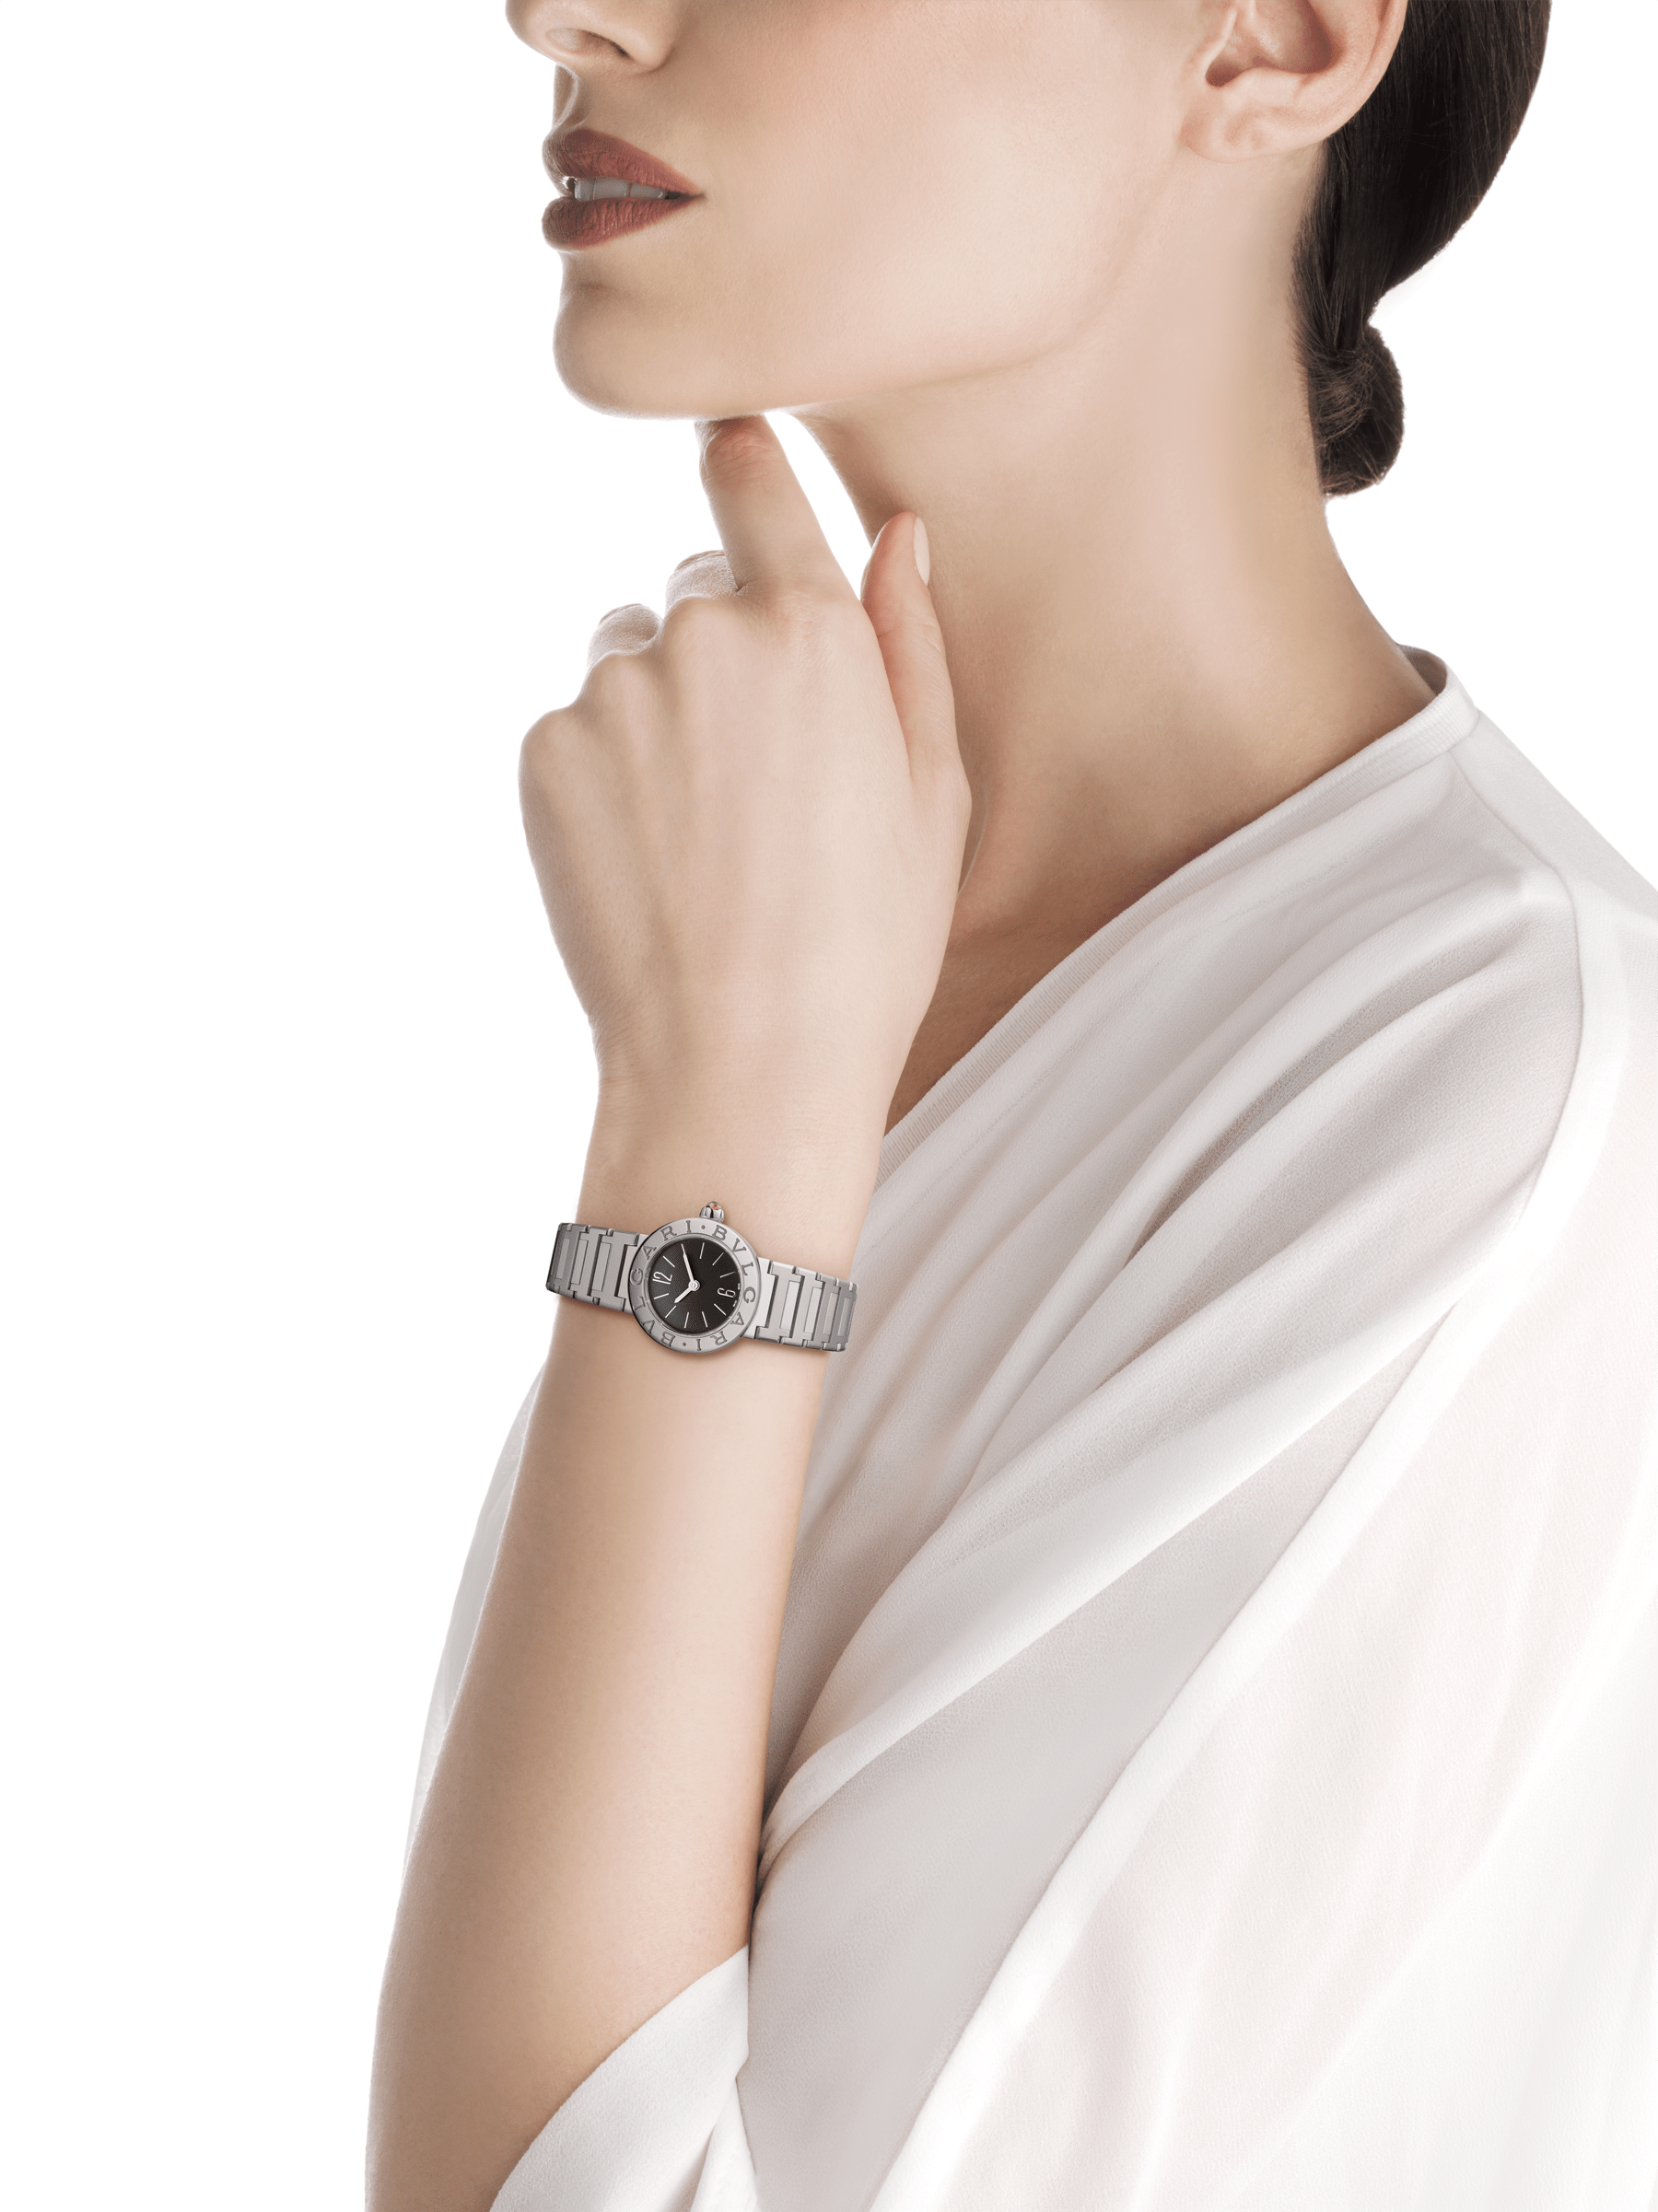 BVLGARI BVLGARI LADY watch in stainless steel case and bracelet, stainless steel bezel engraved with double logo and black lacquered dial 102943 image 3